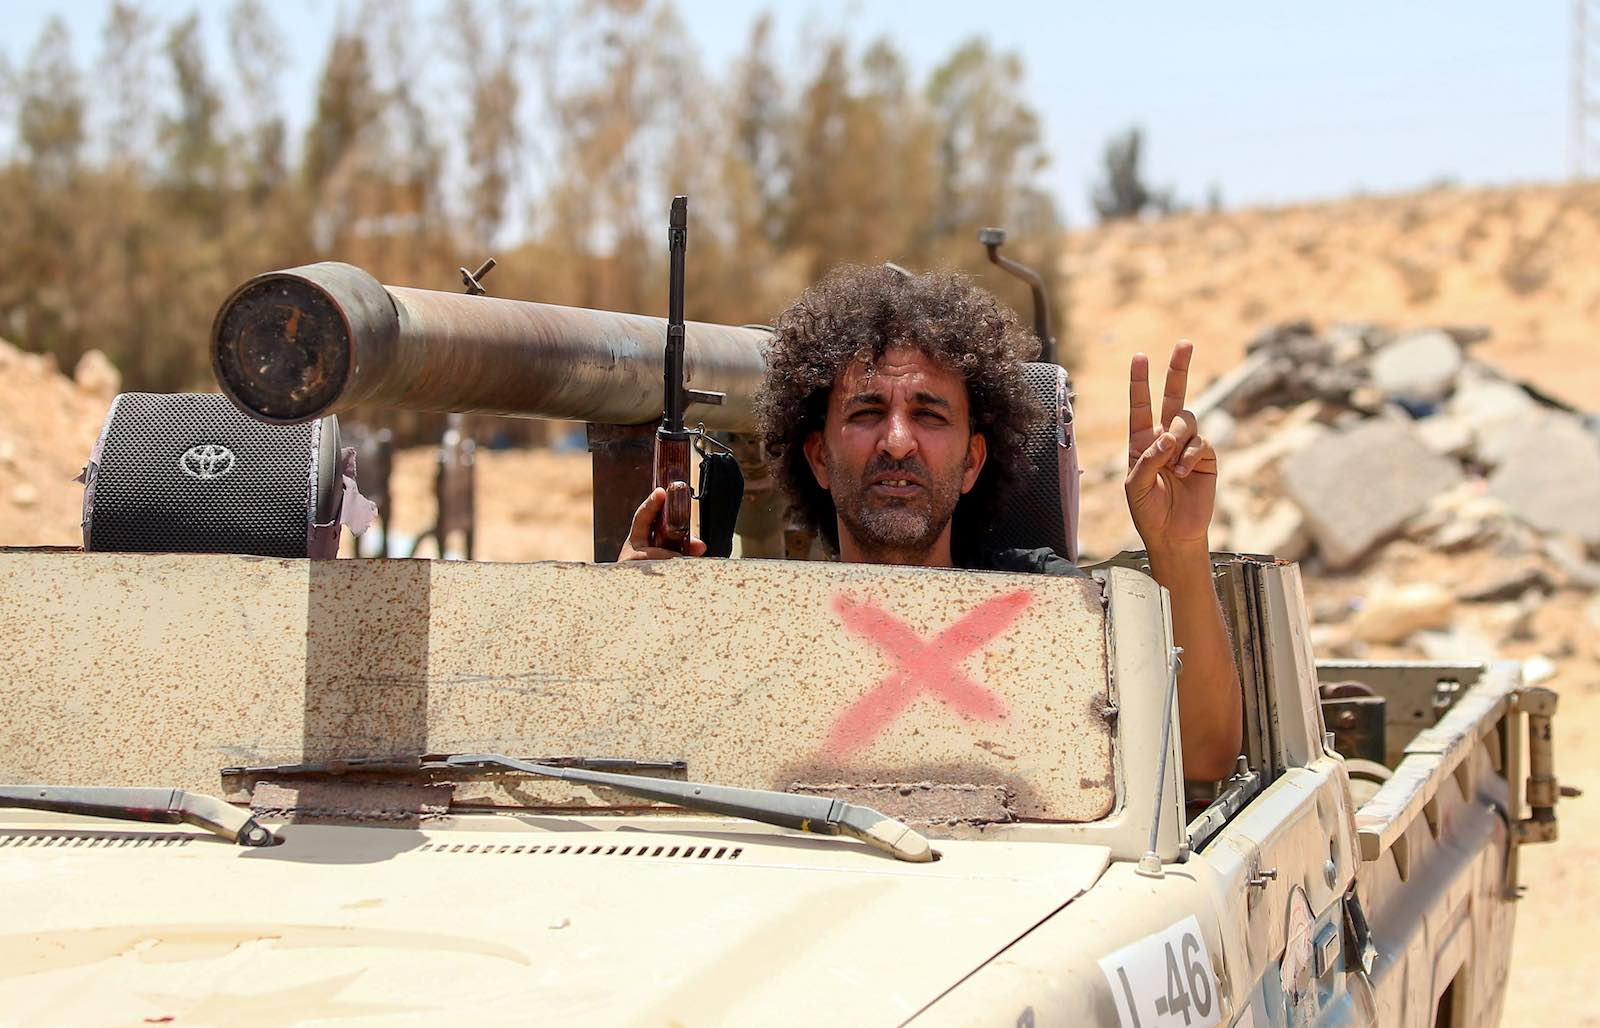 A GNA-aligned fighter in Abu Qurain, Libya (Mahmud Turkia/AFP via Getty Images)